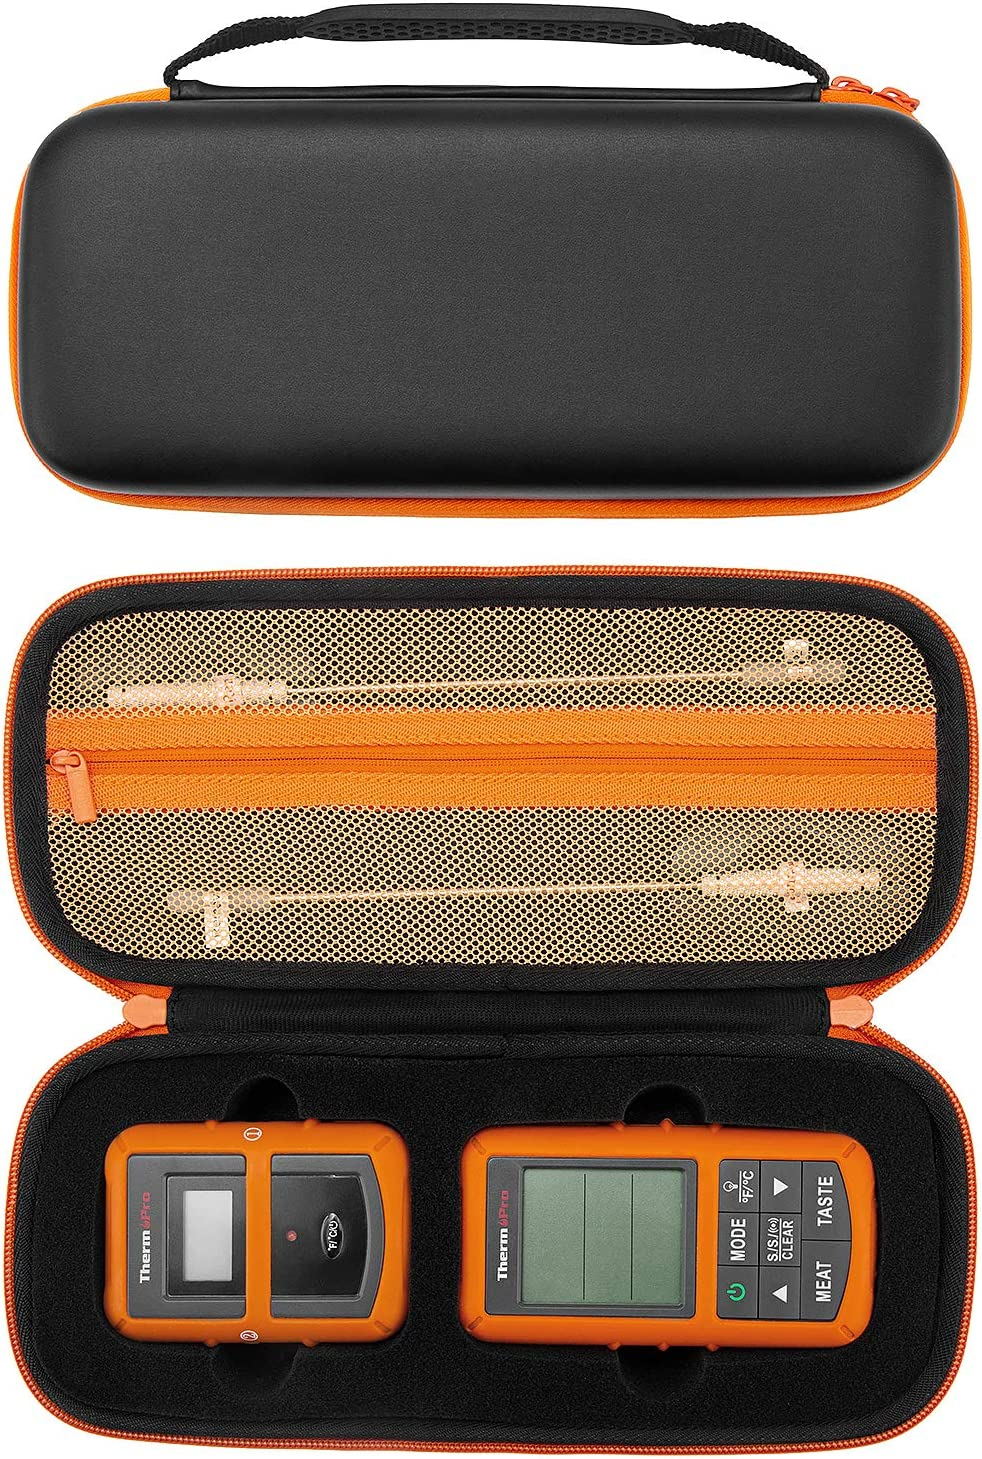 Fromsky Case for Thermopro TP20/ TP08S/ TP07 Wireless Remote Digital Cooking Food Meat Thermometer, Portable Hard Carrying Case Travel Protective Cover Storage Bag